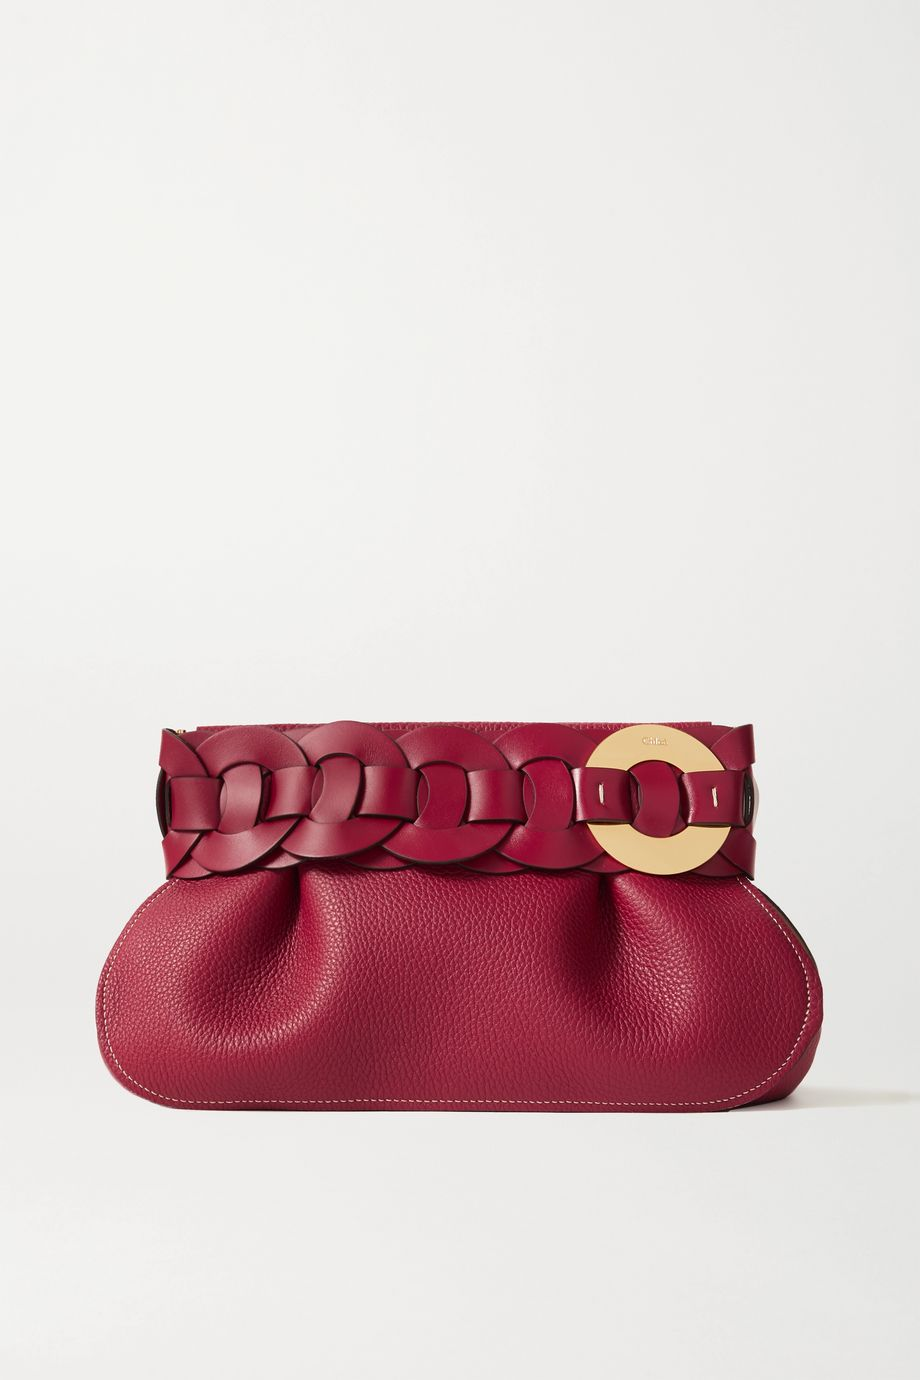 Chloé Darryl braided textured-leather clutch